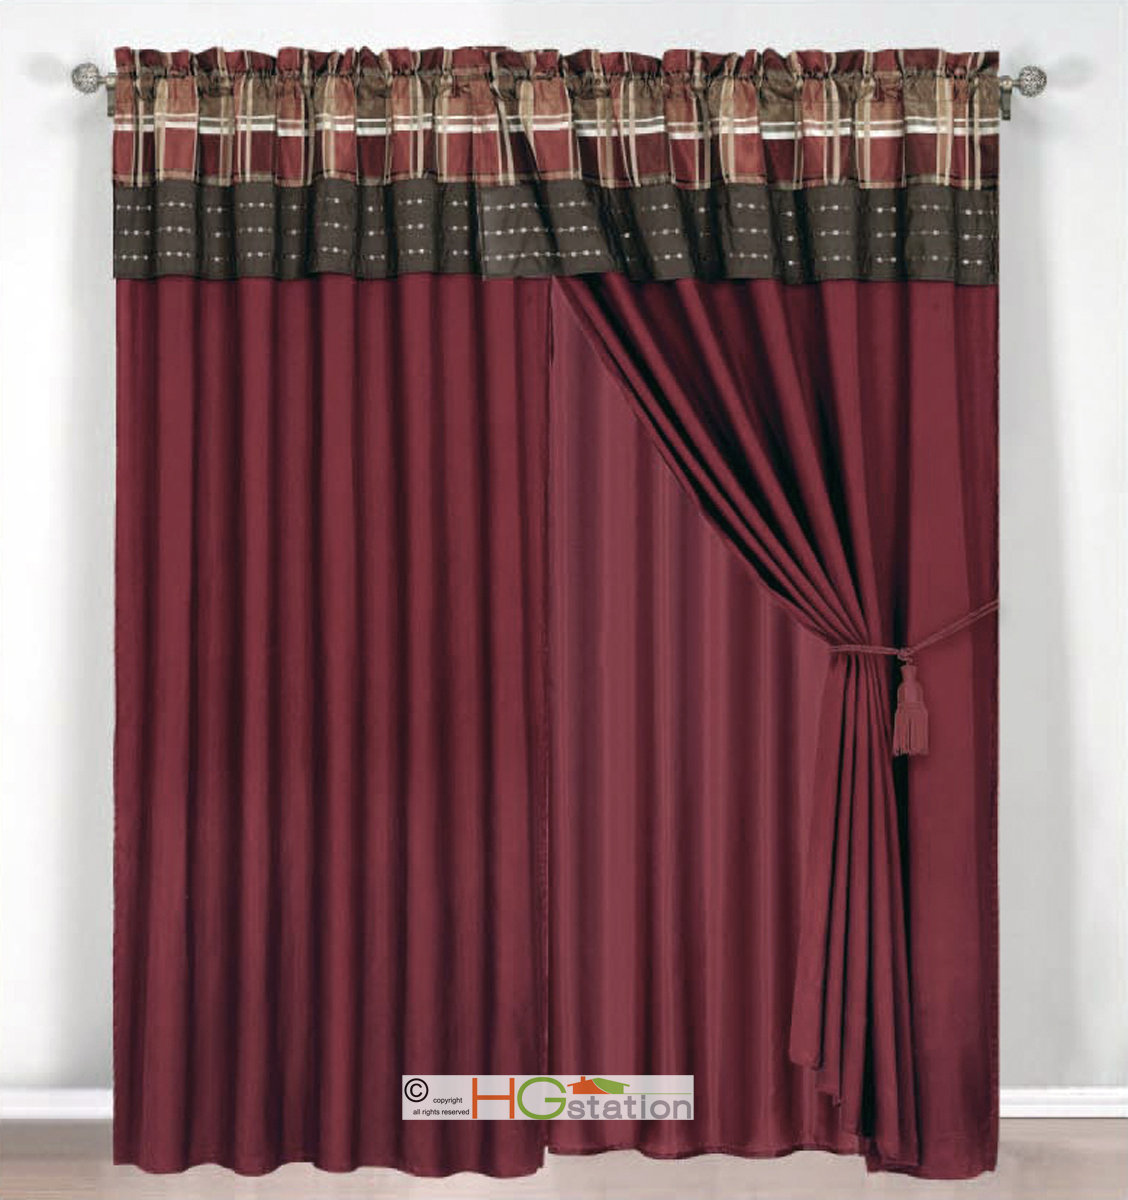 4 Pc Jacquard Autumn Plaid Curtain Set Burgundy Brown Rust